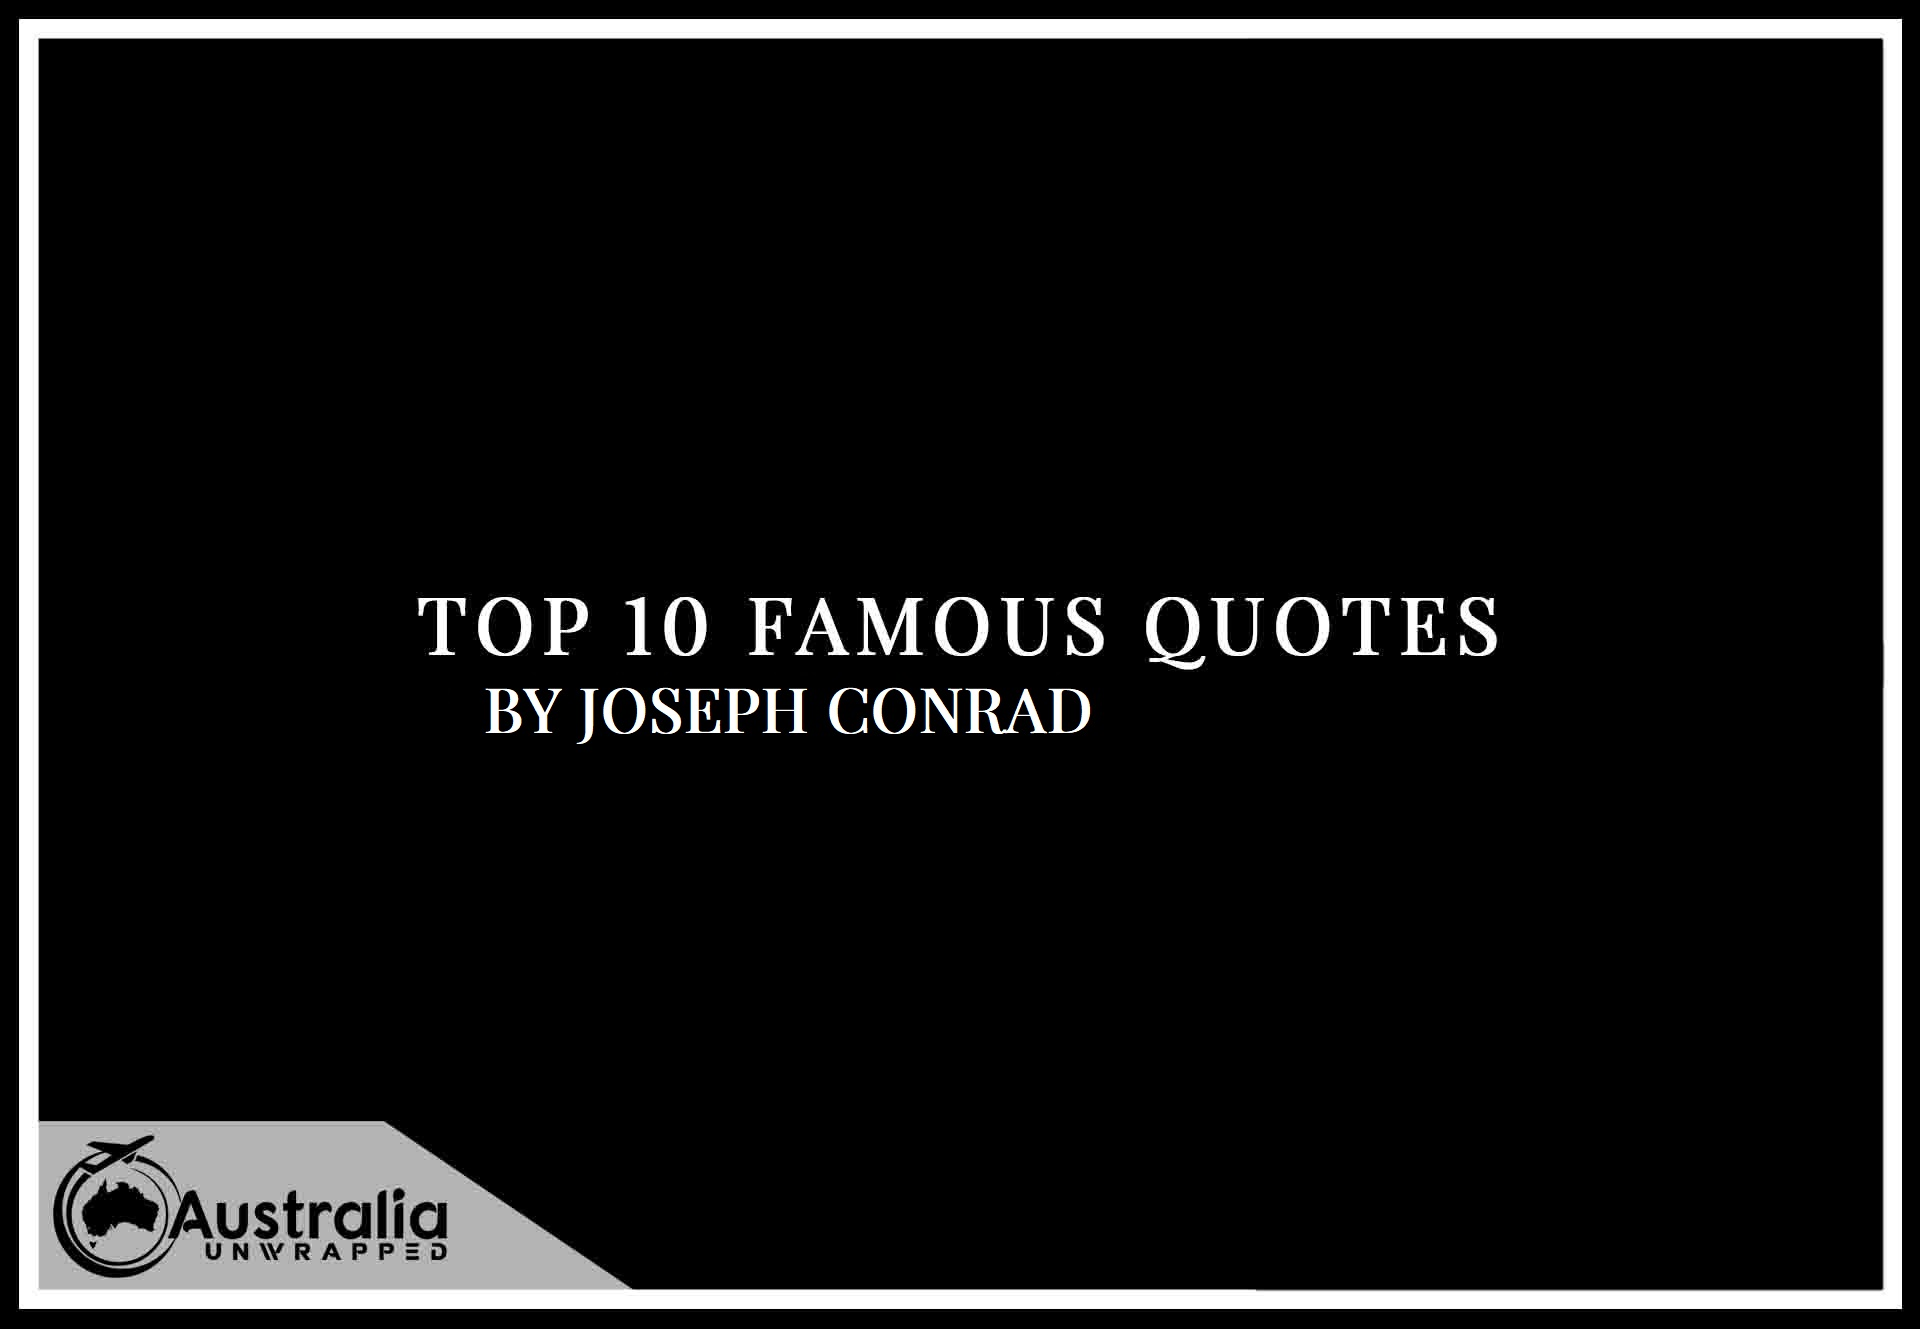 Top 10 Famous Quotes by Author Joseph Conrad